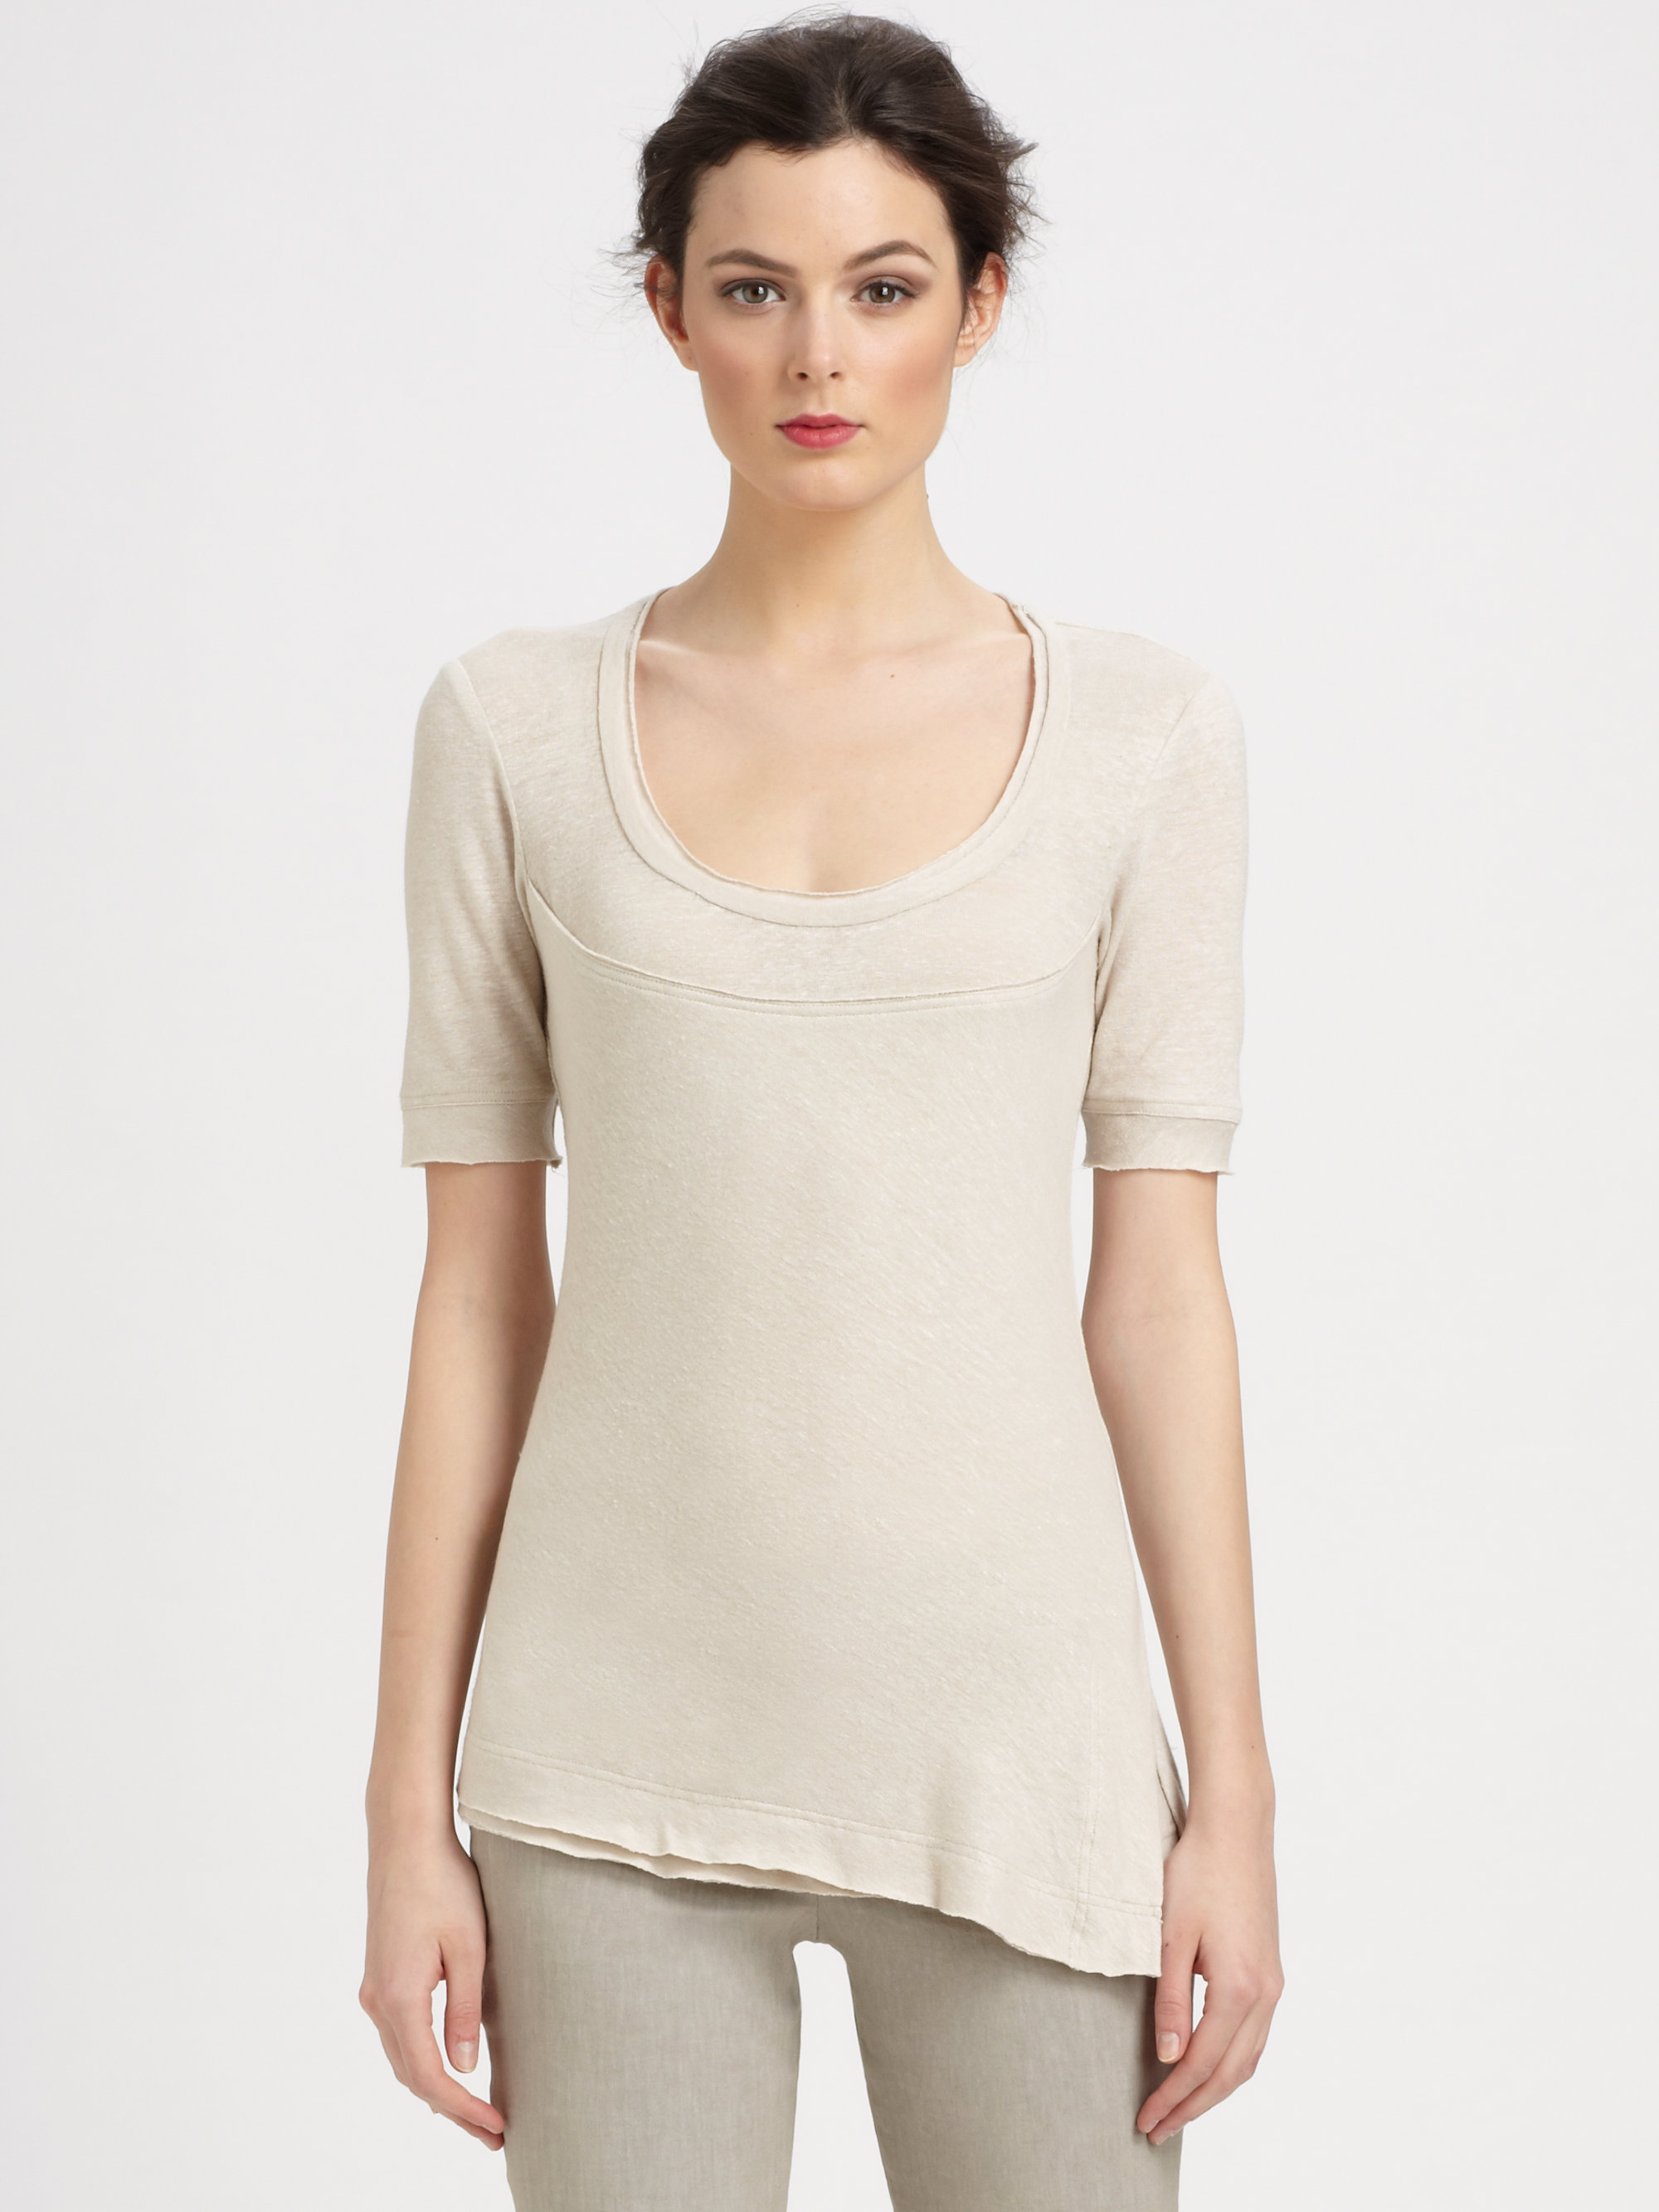 Donna karan new york stretch linen layered tee in beige for Donna karen new york